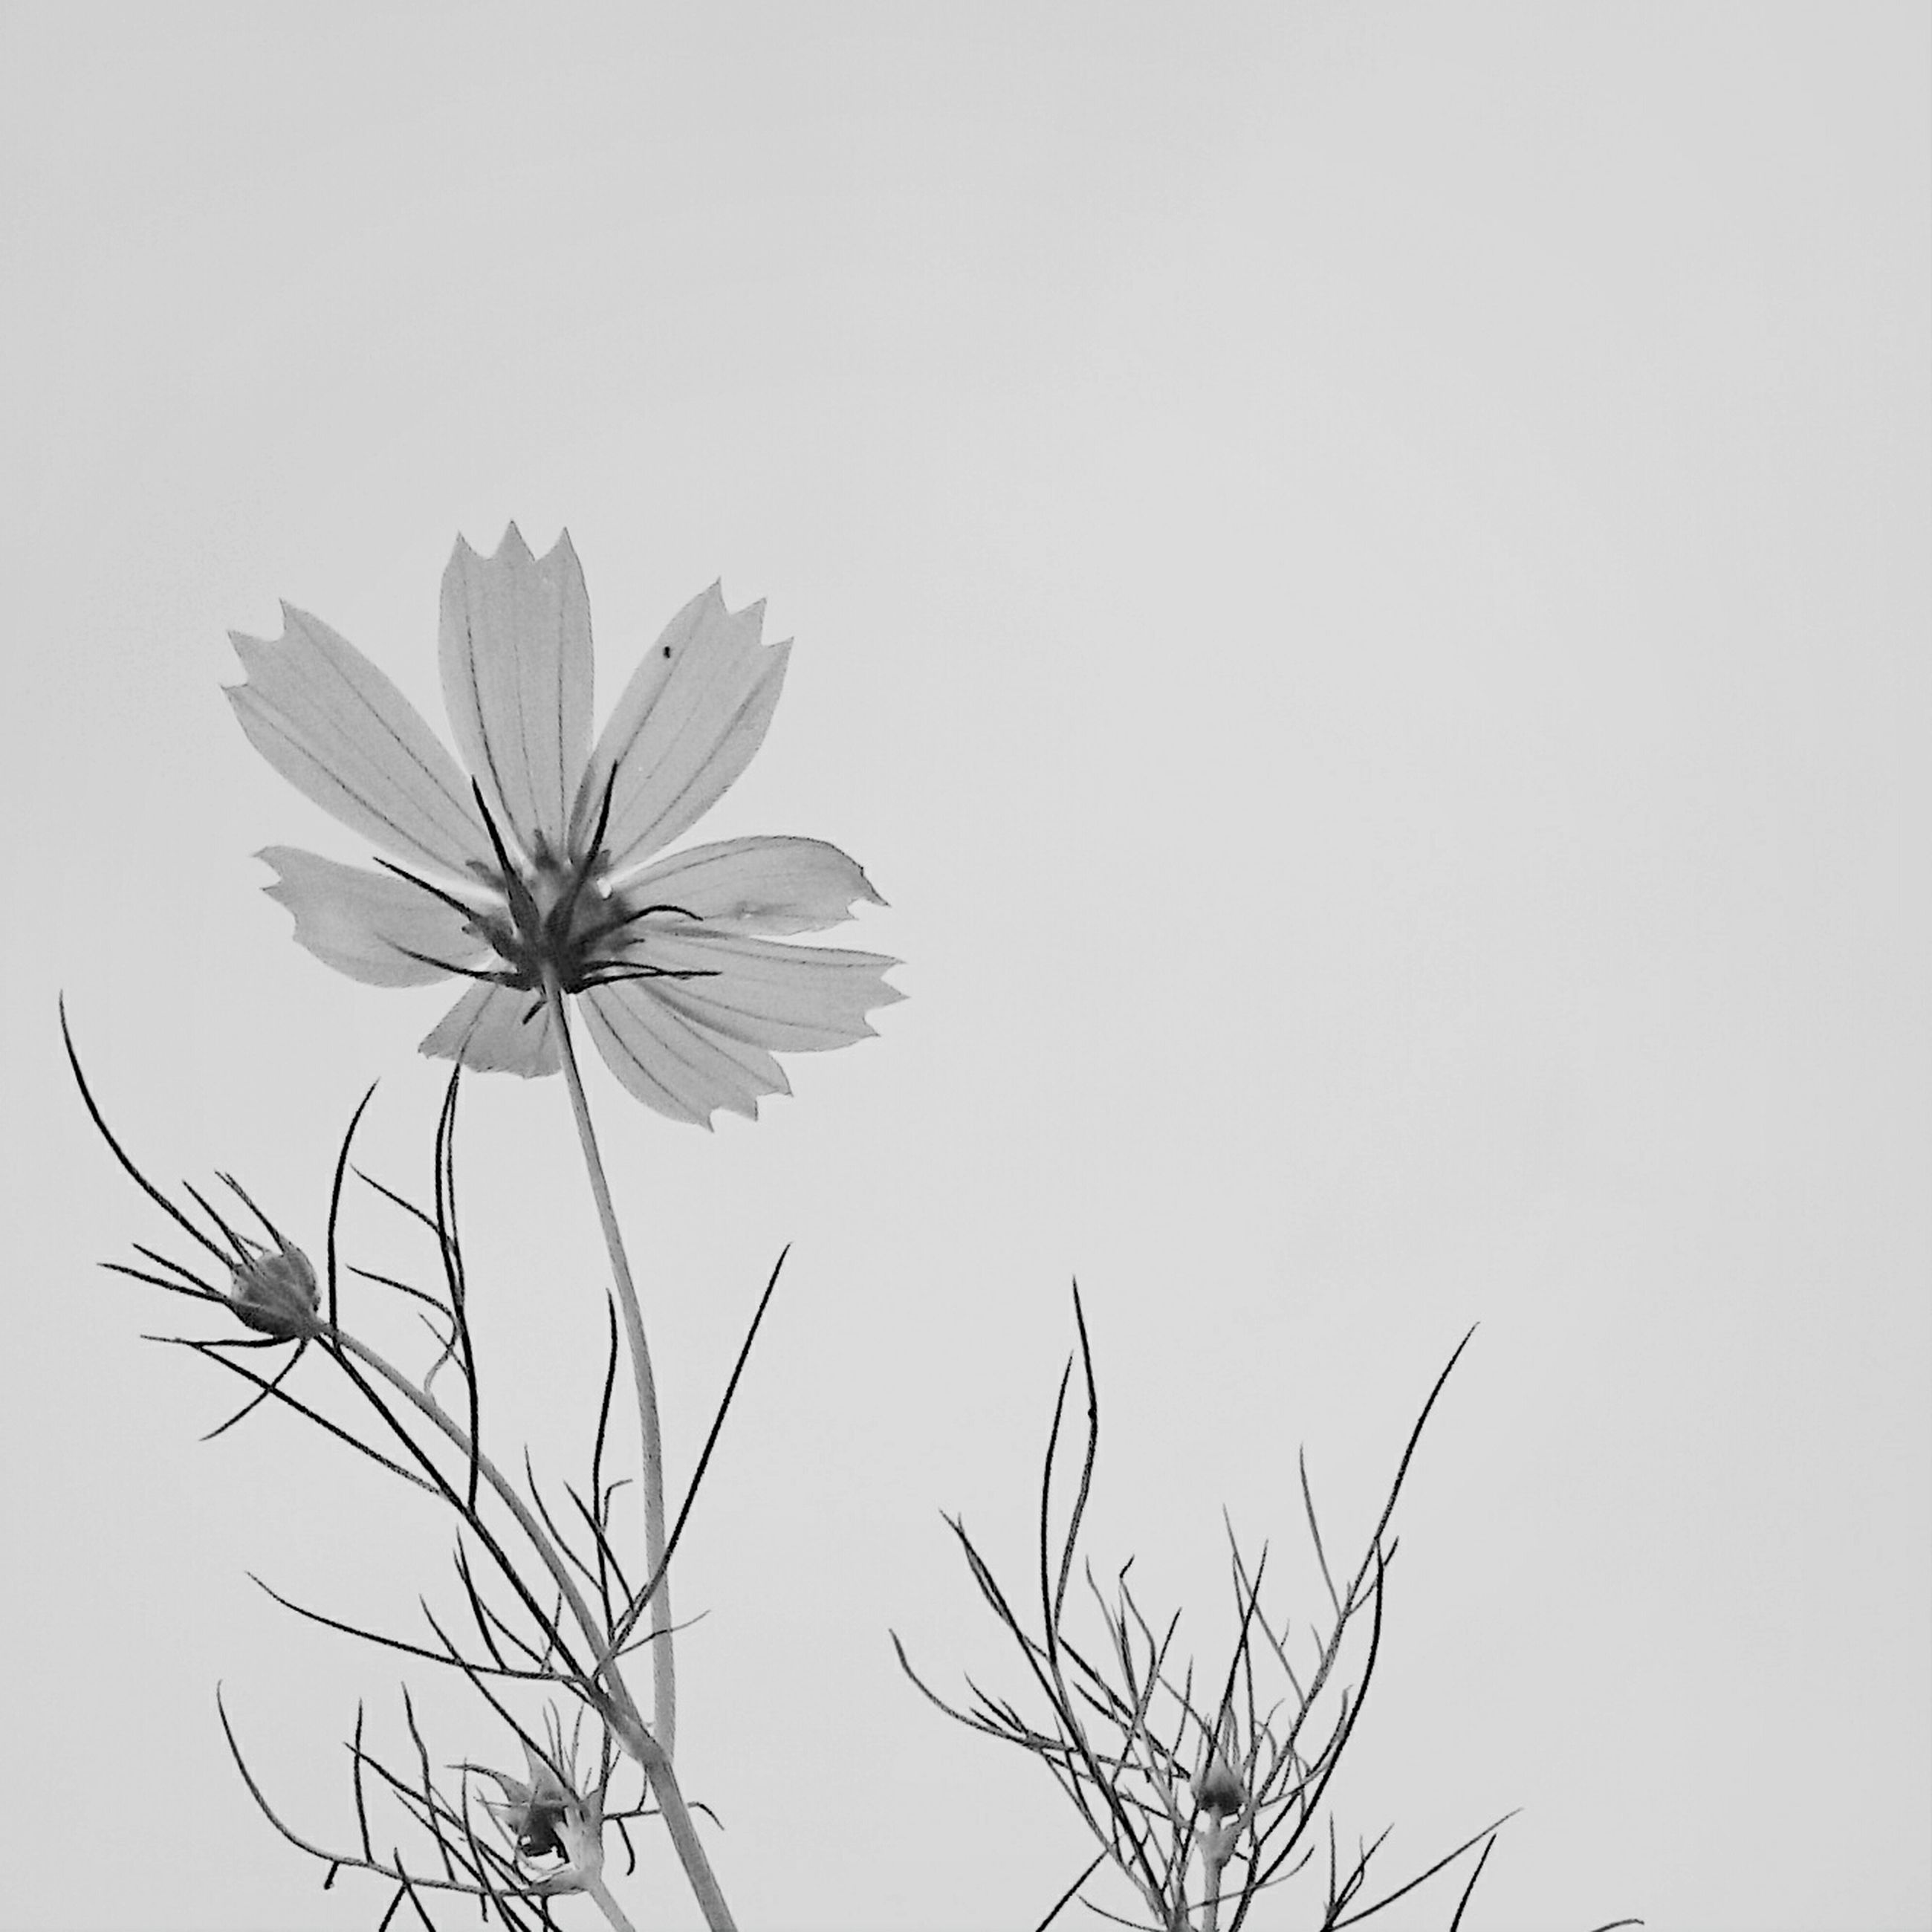 clear sky, low angle view, flower, copy space, growth, fragility, nature, beauty in nature, branch, freshness, stem, close-up, white background, studio shot, plant, no people, petal, outdoors, day, twig